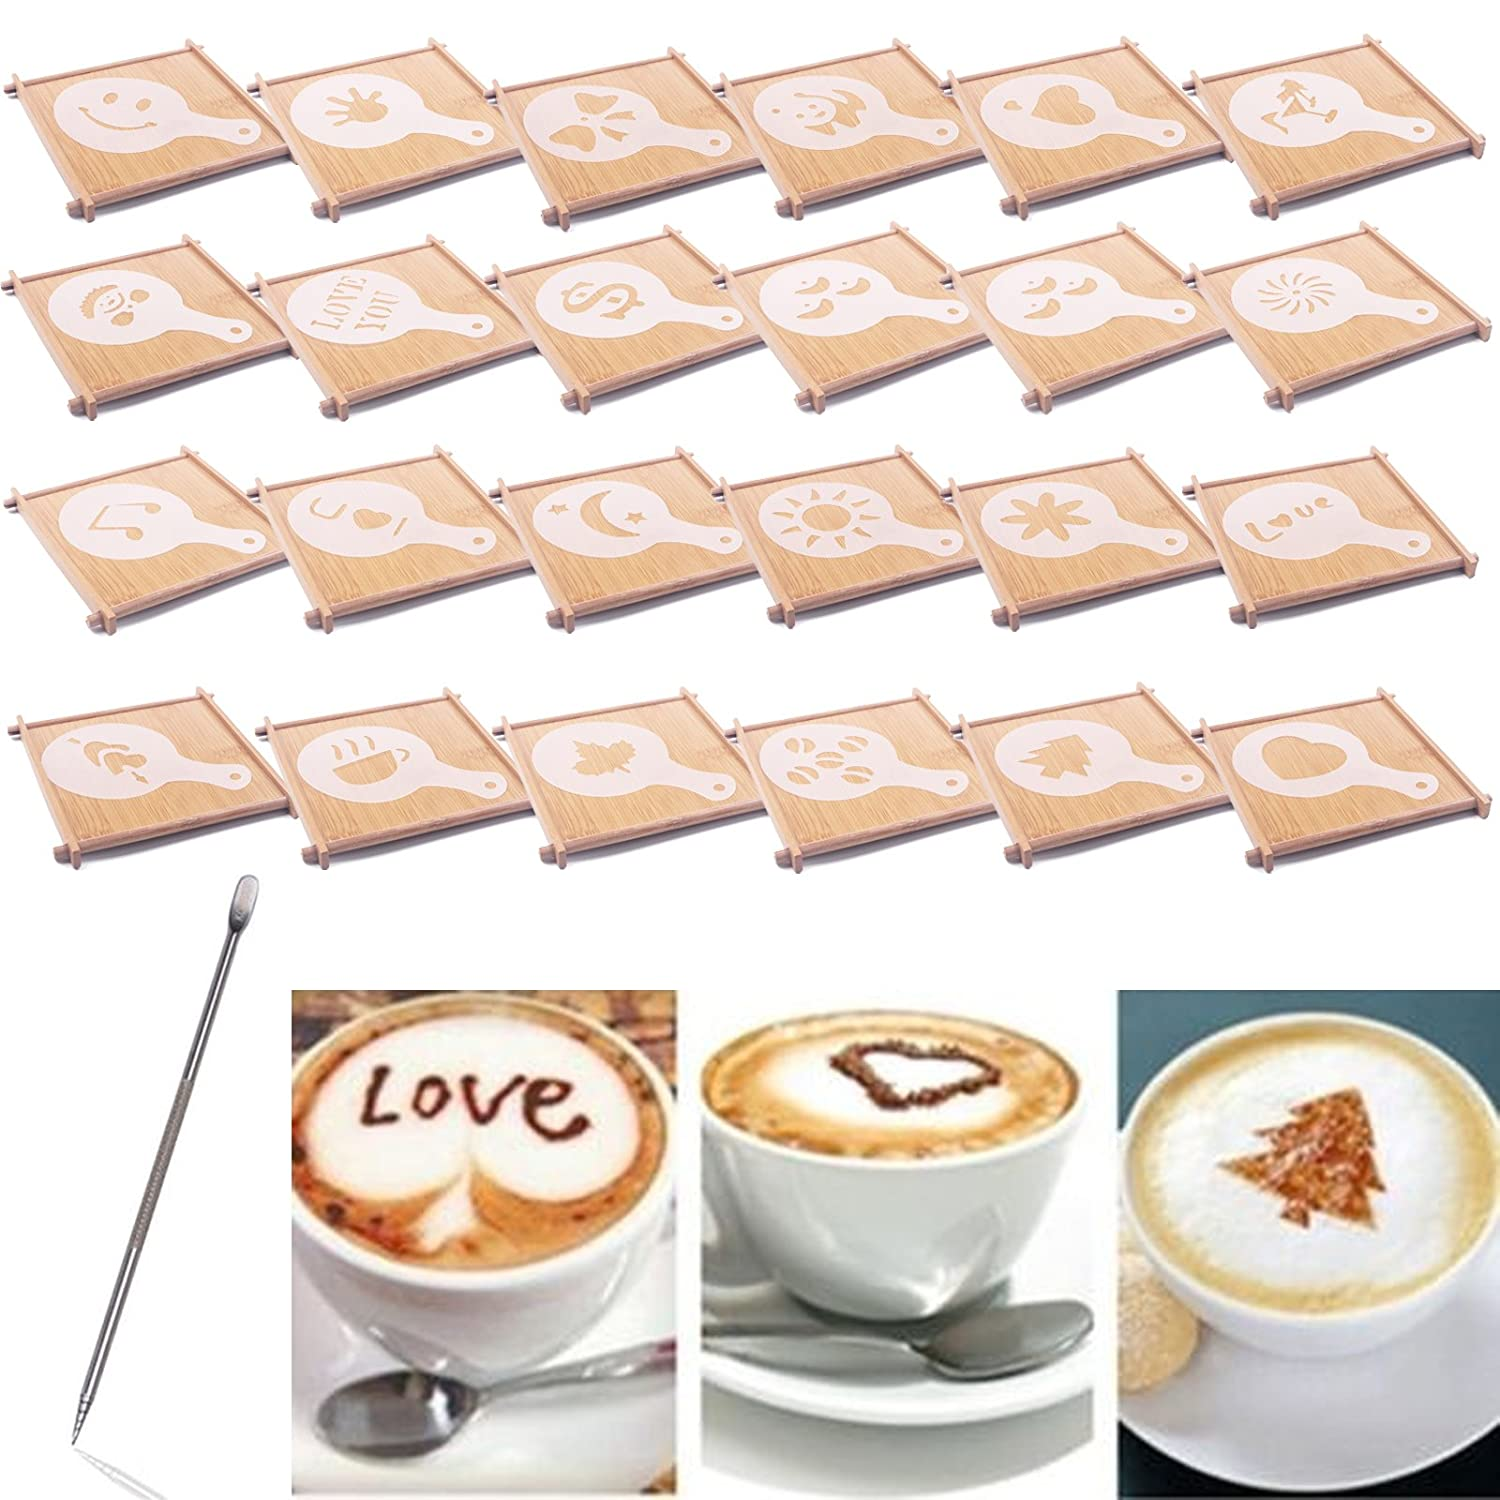 BIHRTC 24 Pcs 23 Designs Cappuccino Latte Barista Coffee Art Stencils Template Strew Pad Duster Spray Art + 1pc Coffee Latte Art Pen LTD